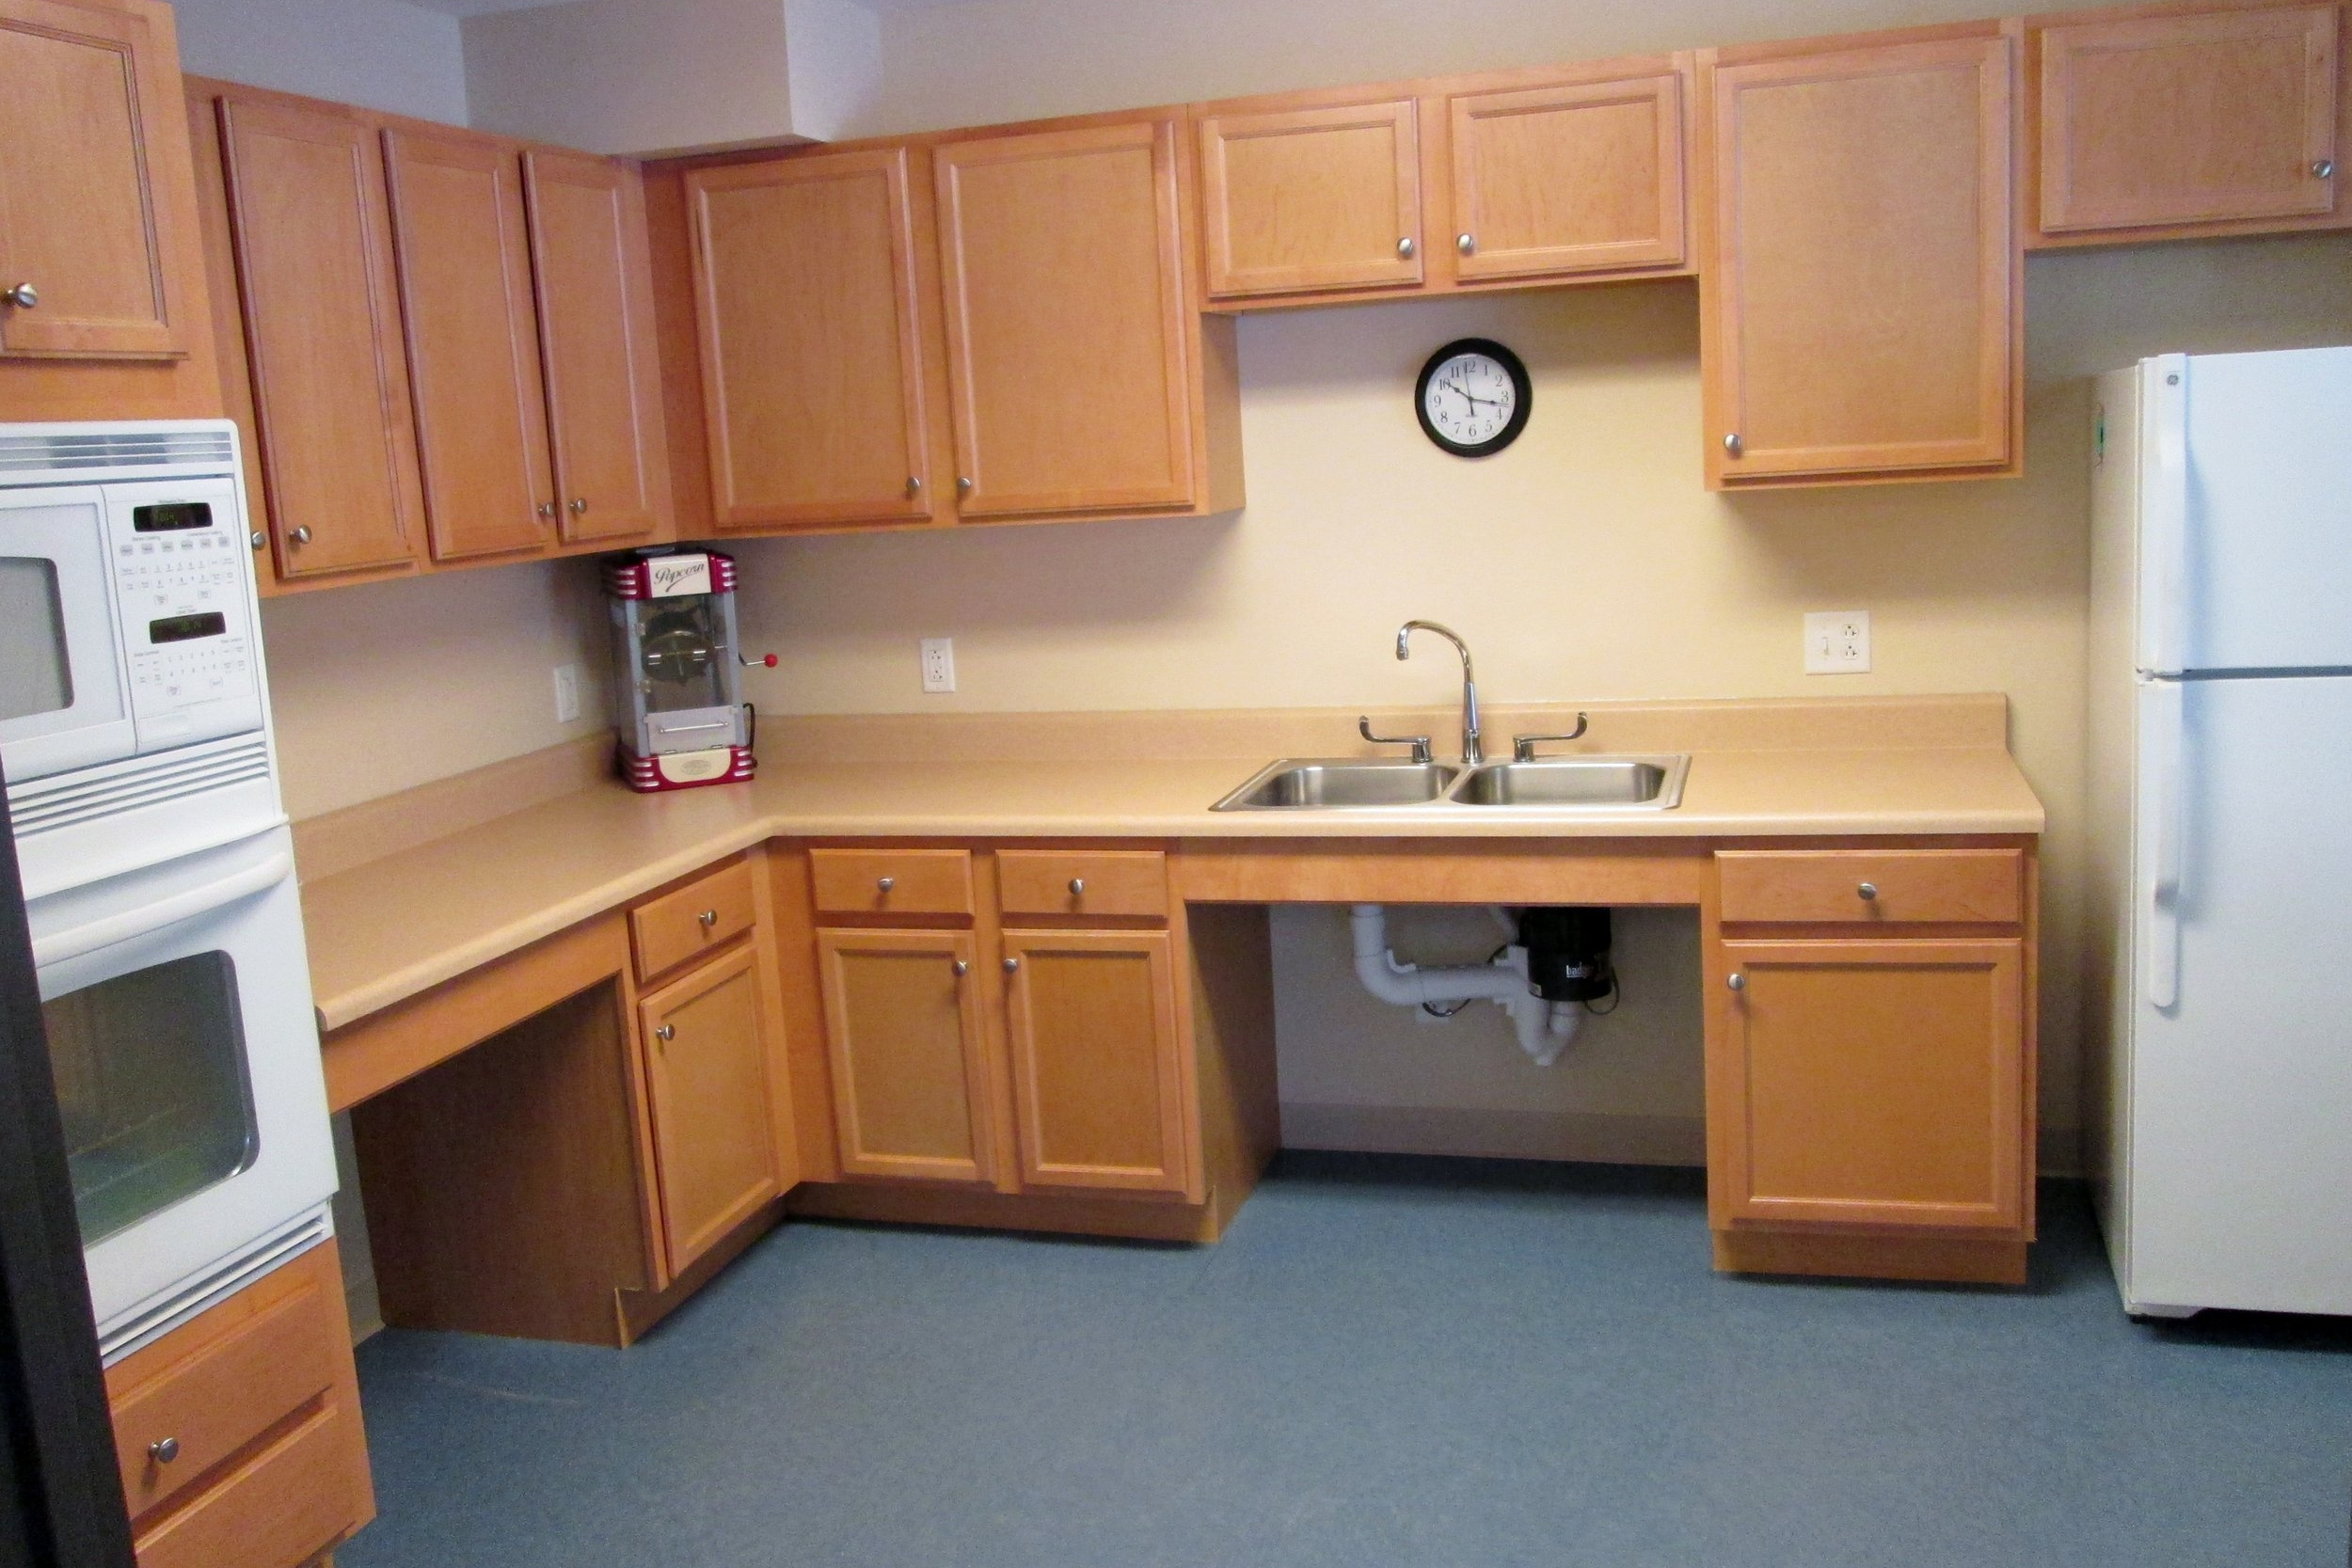 Photo 4-Community Kitchen.JPG